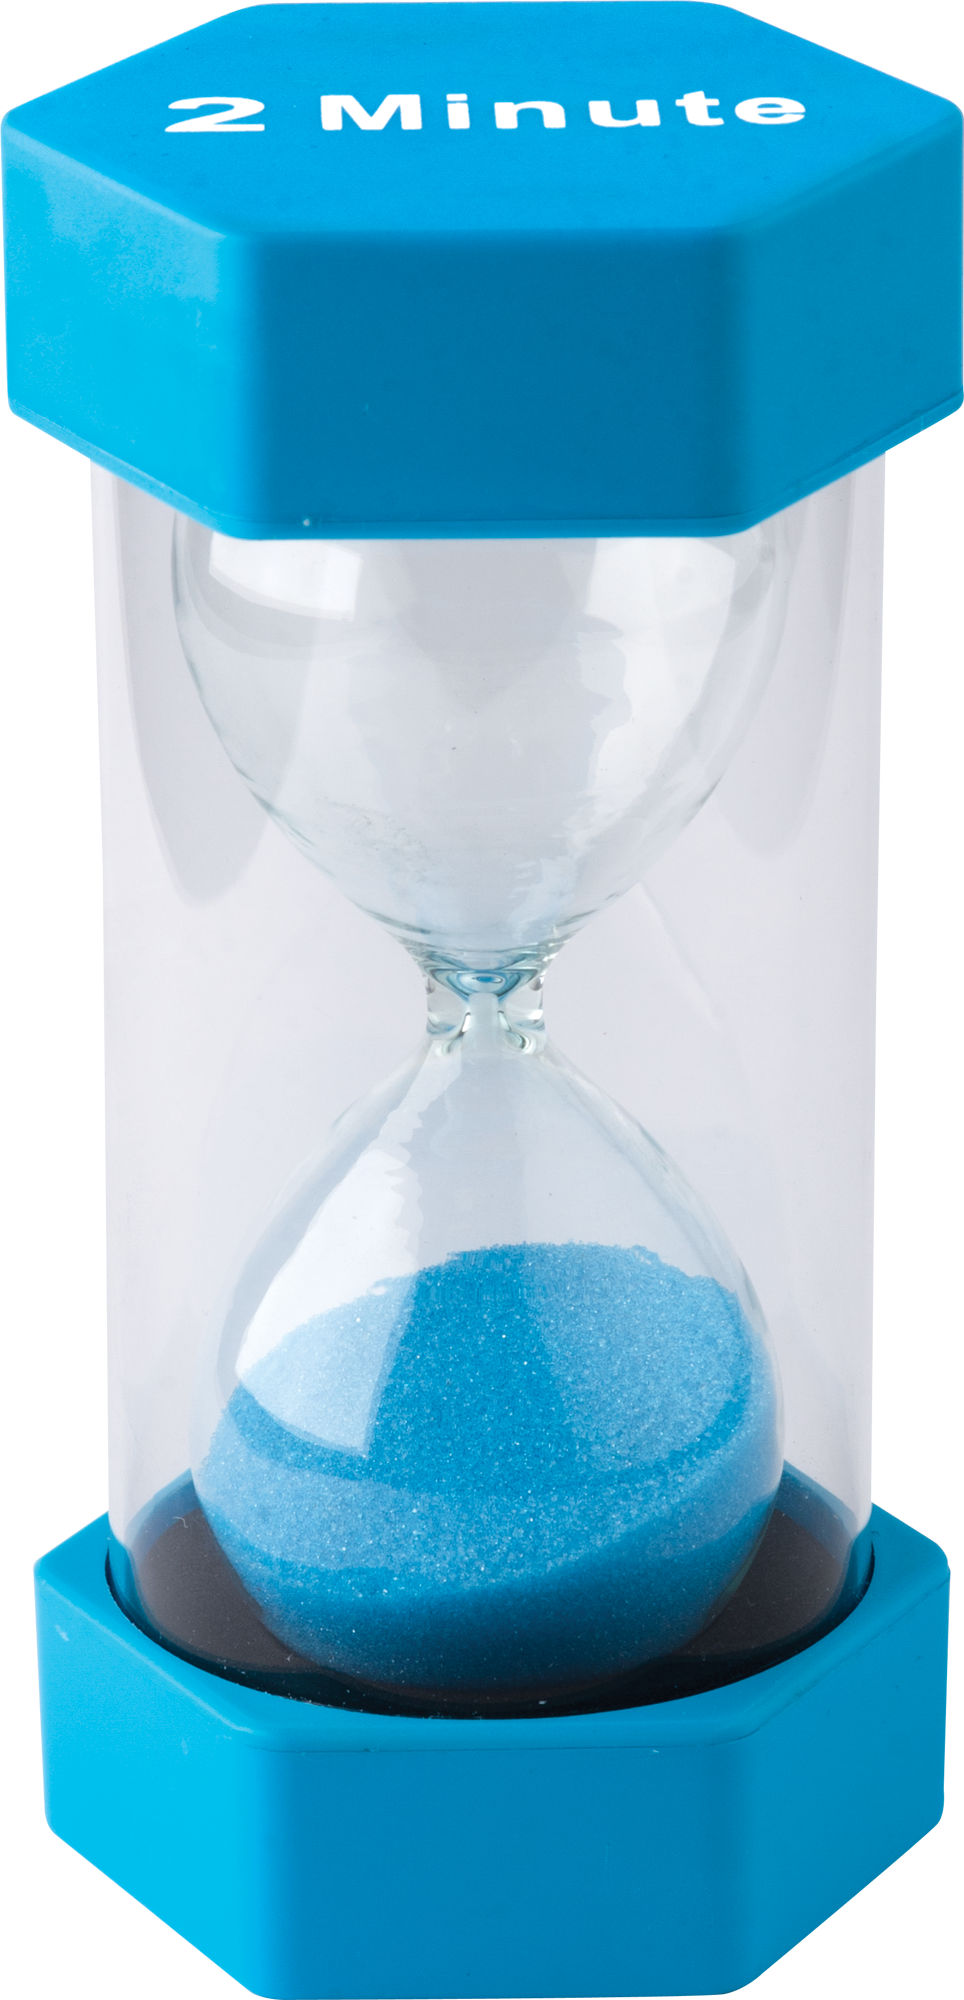 2 minute sand timer large tcr20658 teacher created resources